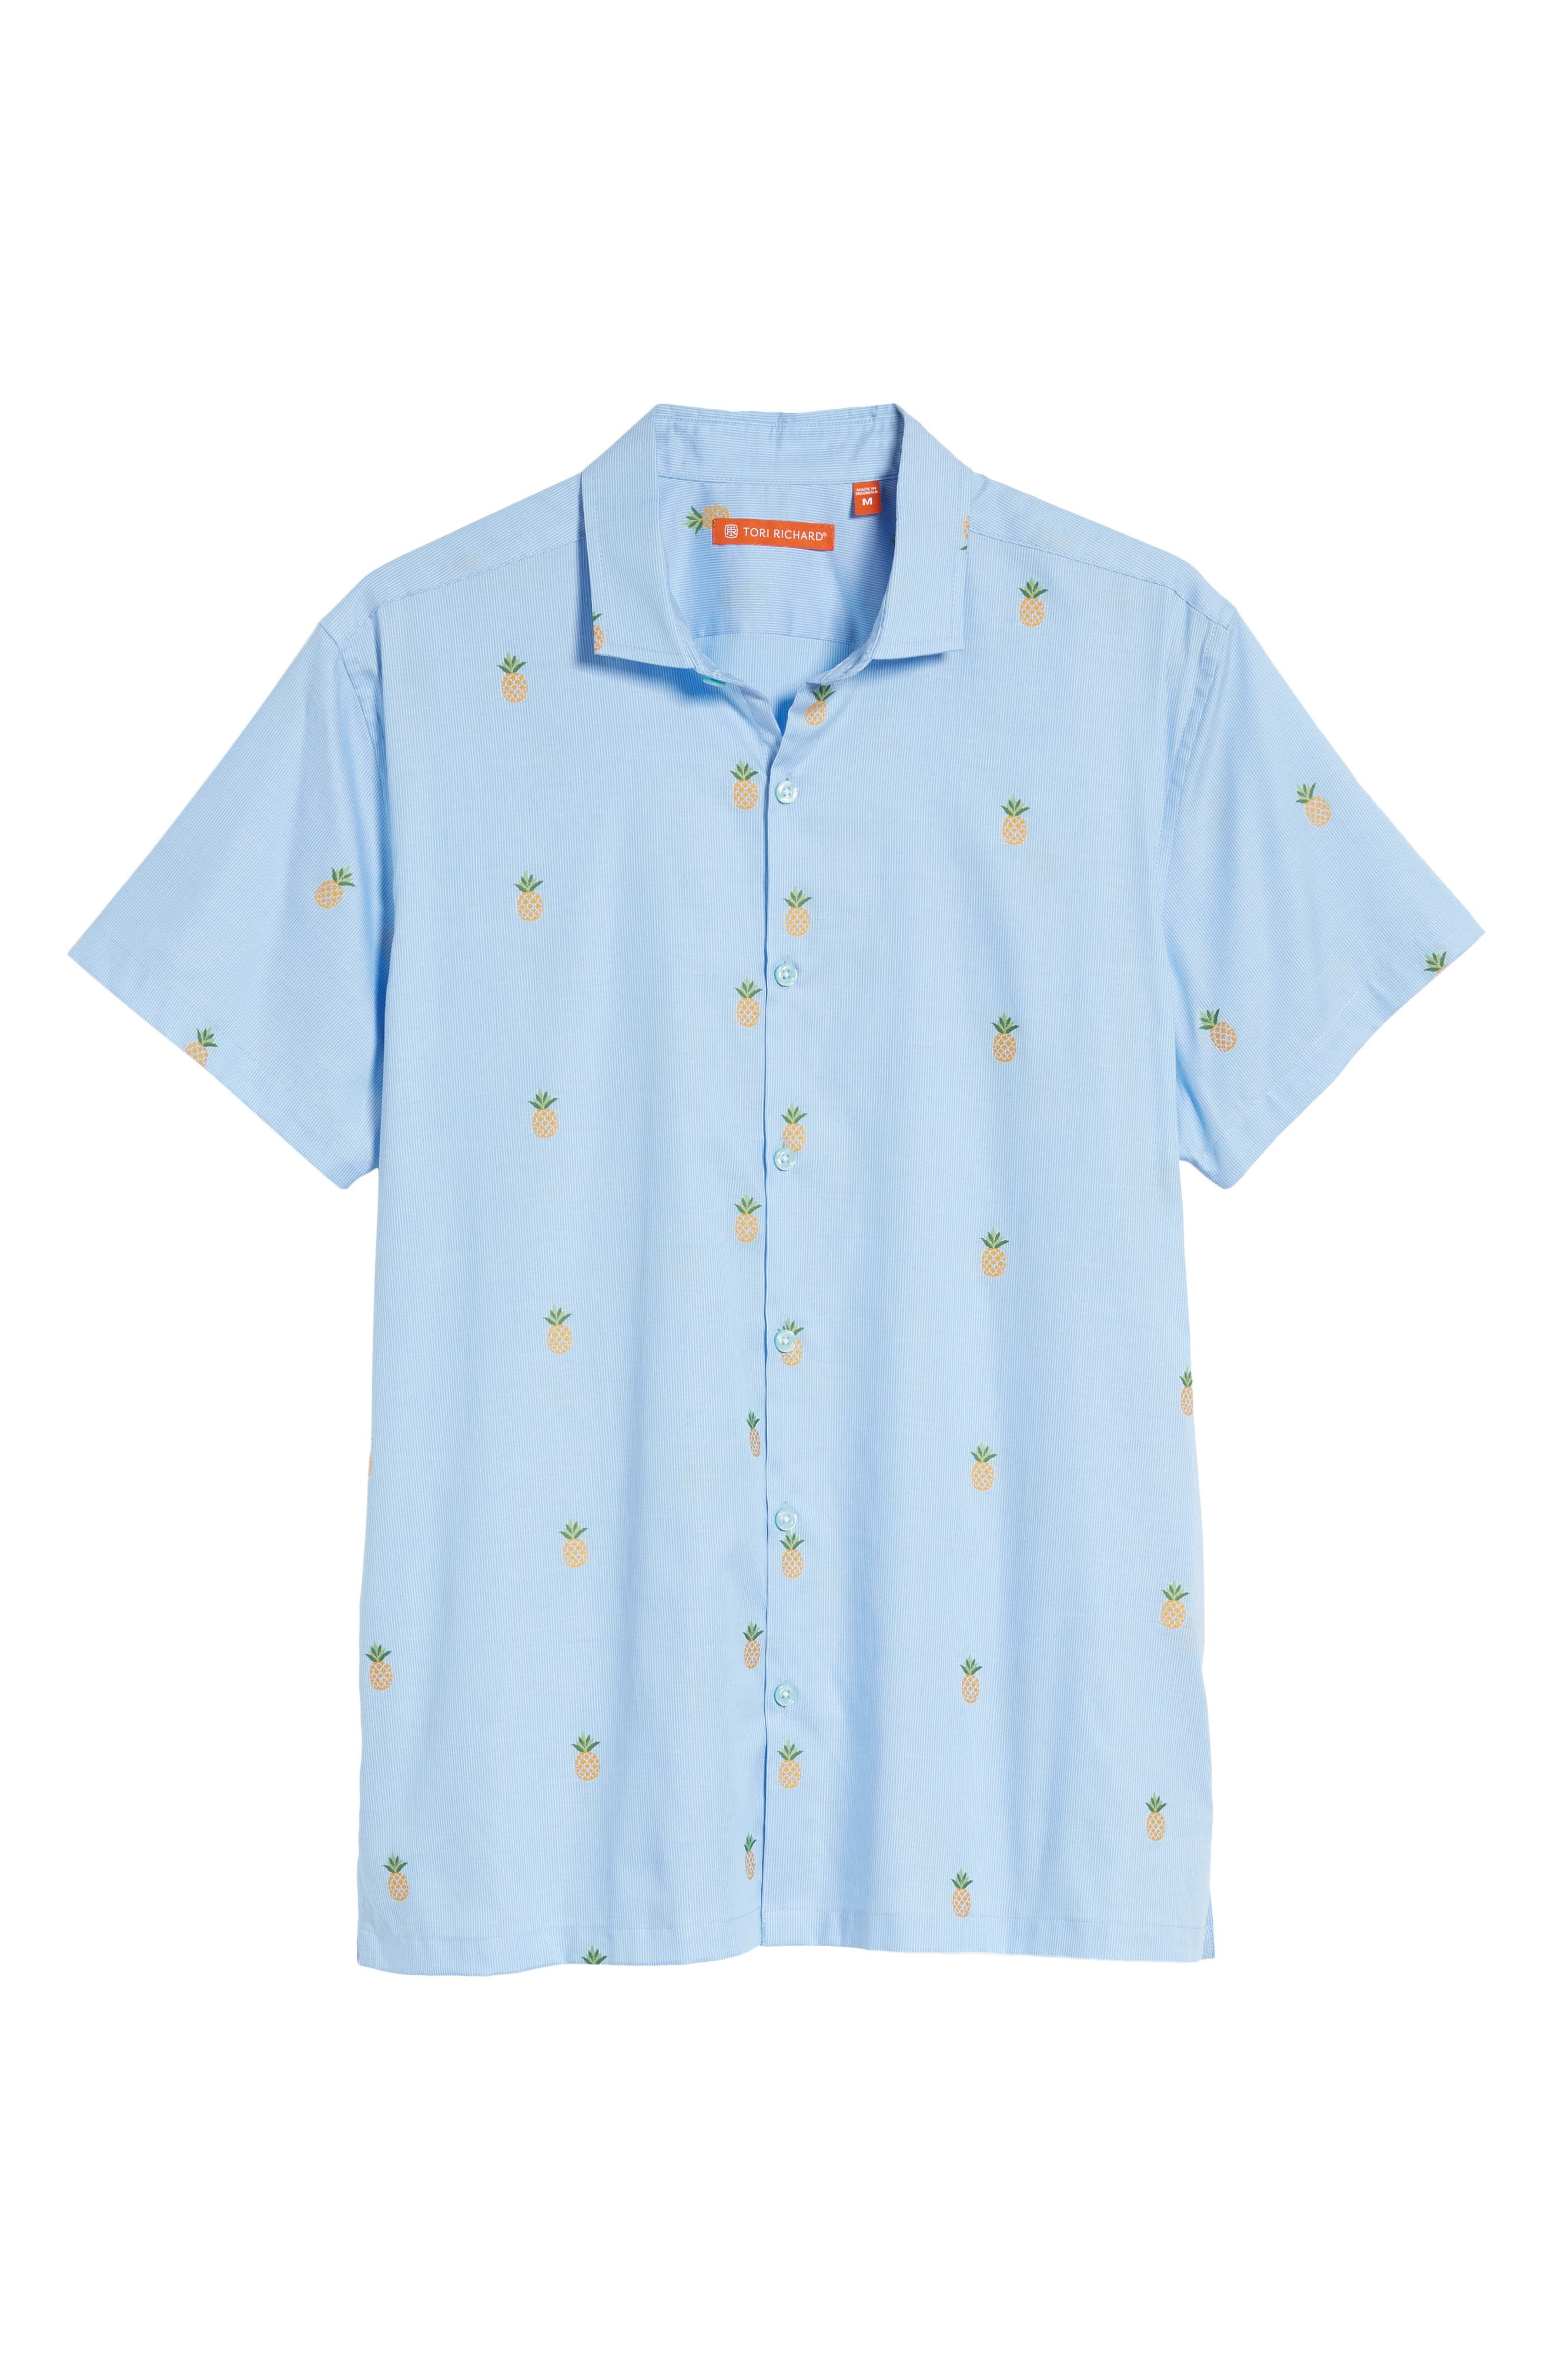 Dole 'N' Row Trim Fit Embroidered Sport Shirt,                             Alternate thumbnail 6, color,                             Blue